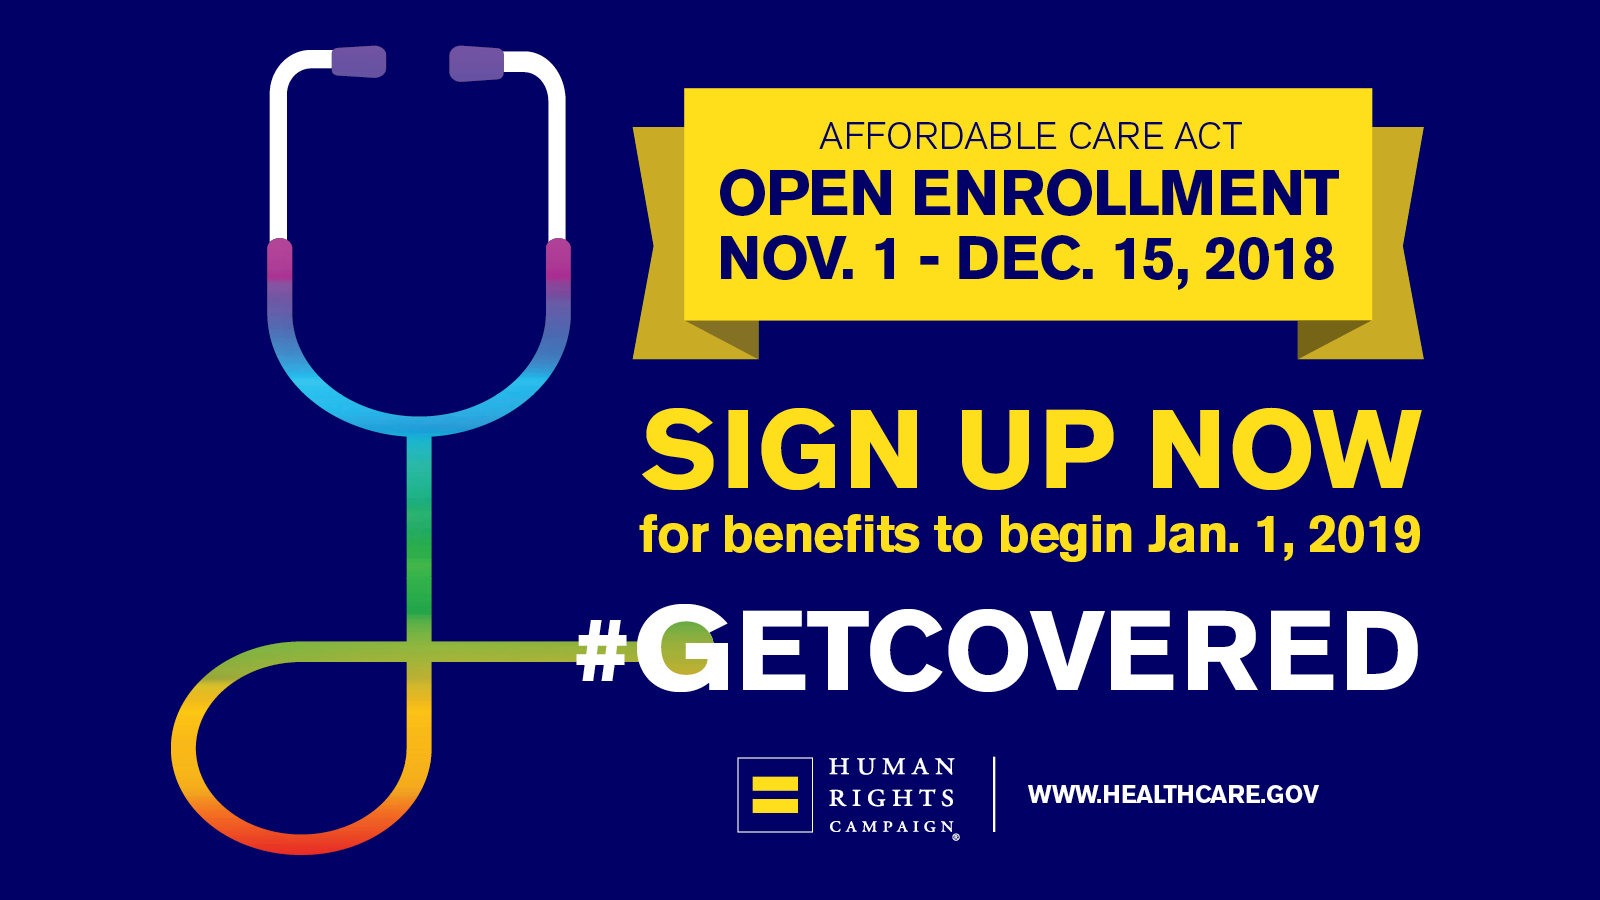 ACA enrollment period begins in Delaware